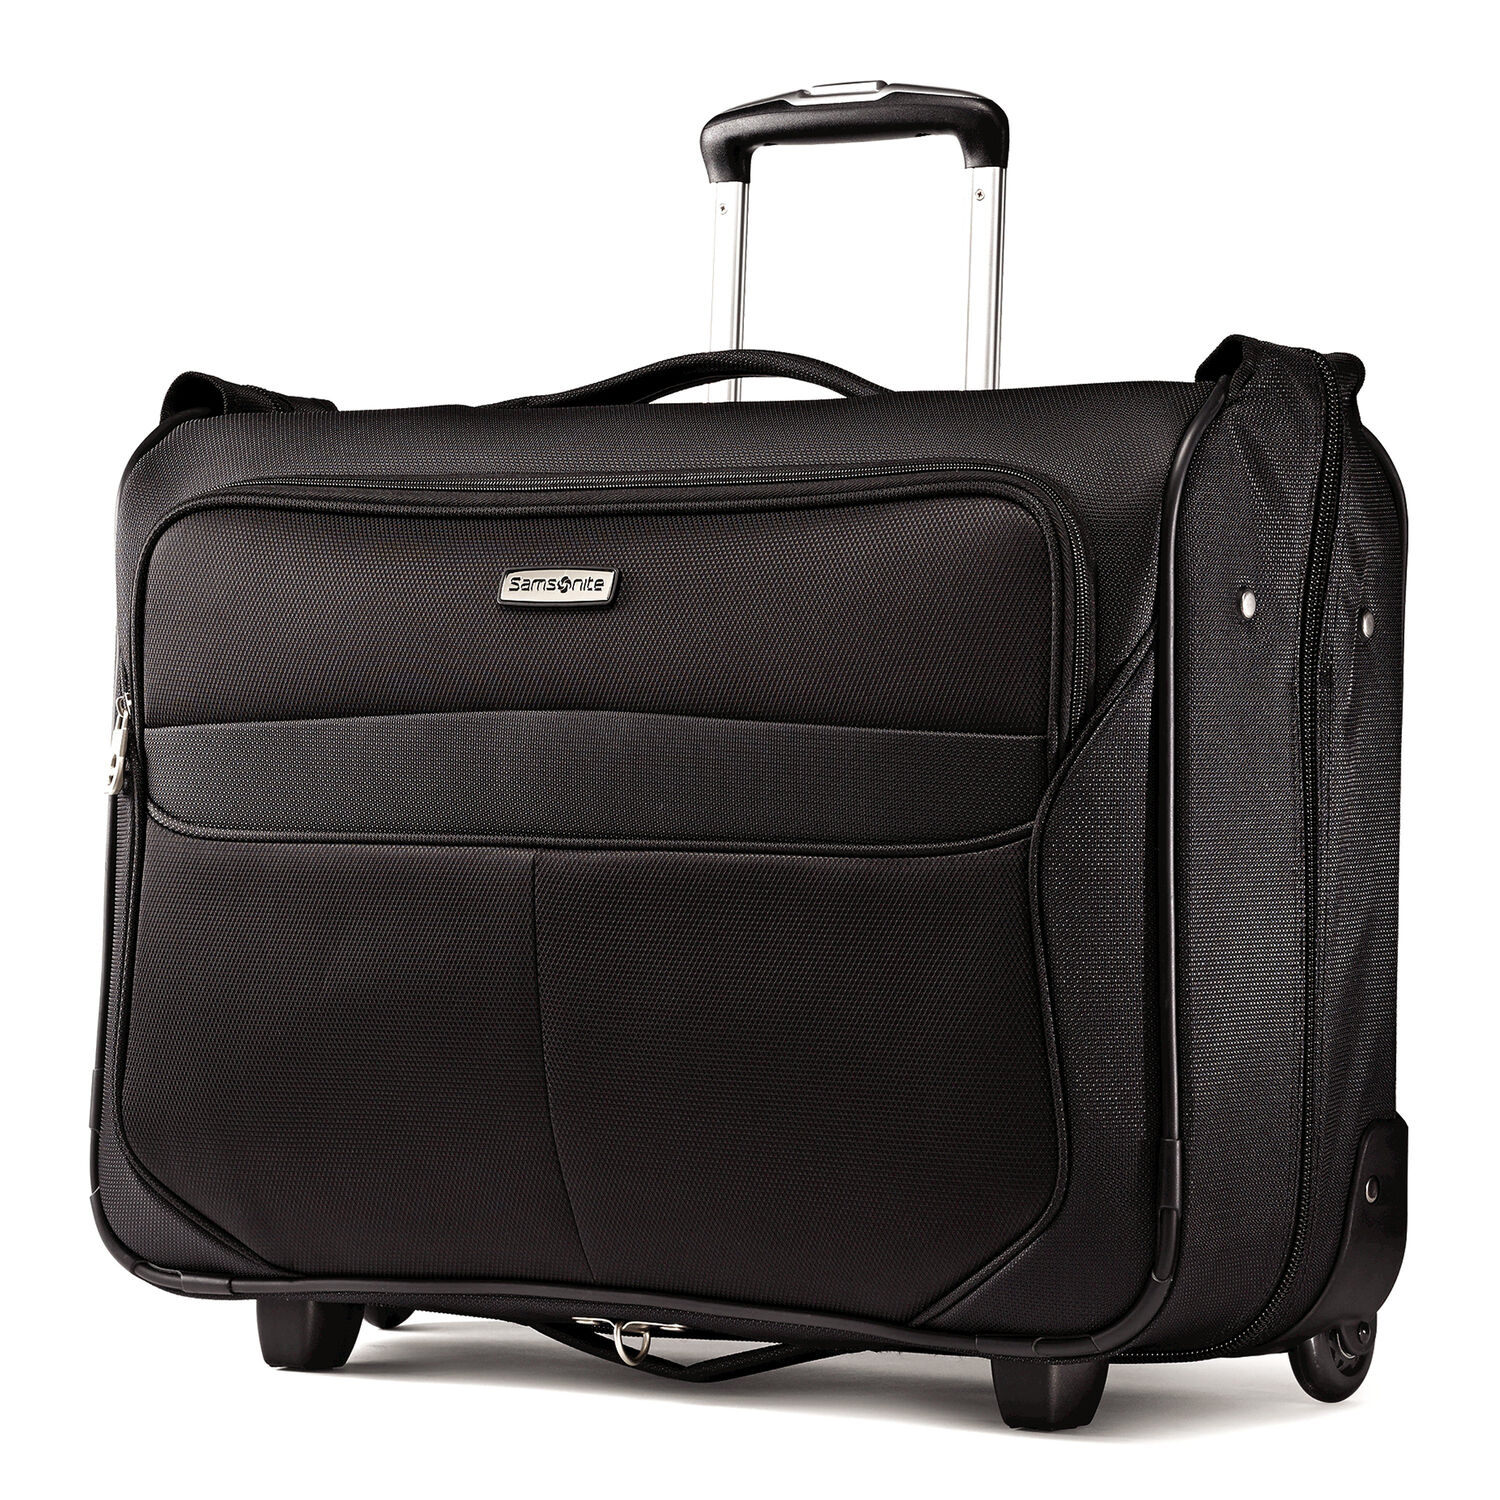 Samsonite. Samsonite has been one of the most recognised brands for luggage throughout it's history. Samsonite Luggage is renowned, world-wide, for being well designed & durable and accessible to a wide apssocial.mleight cases have become essential to the Samsonite traveller with include the Curv, Cosmolite and Cubelite ranges.